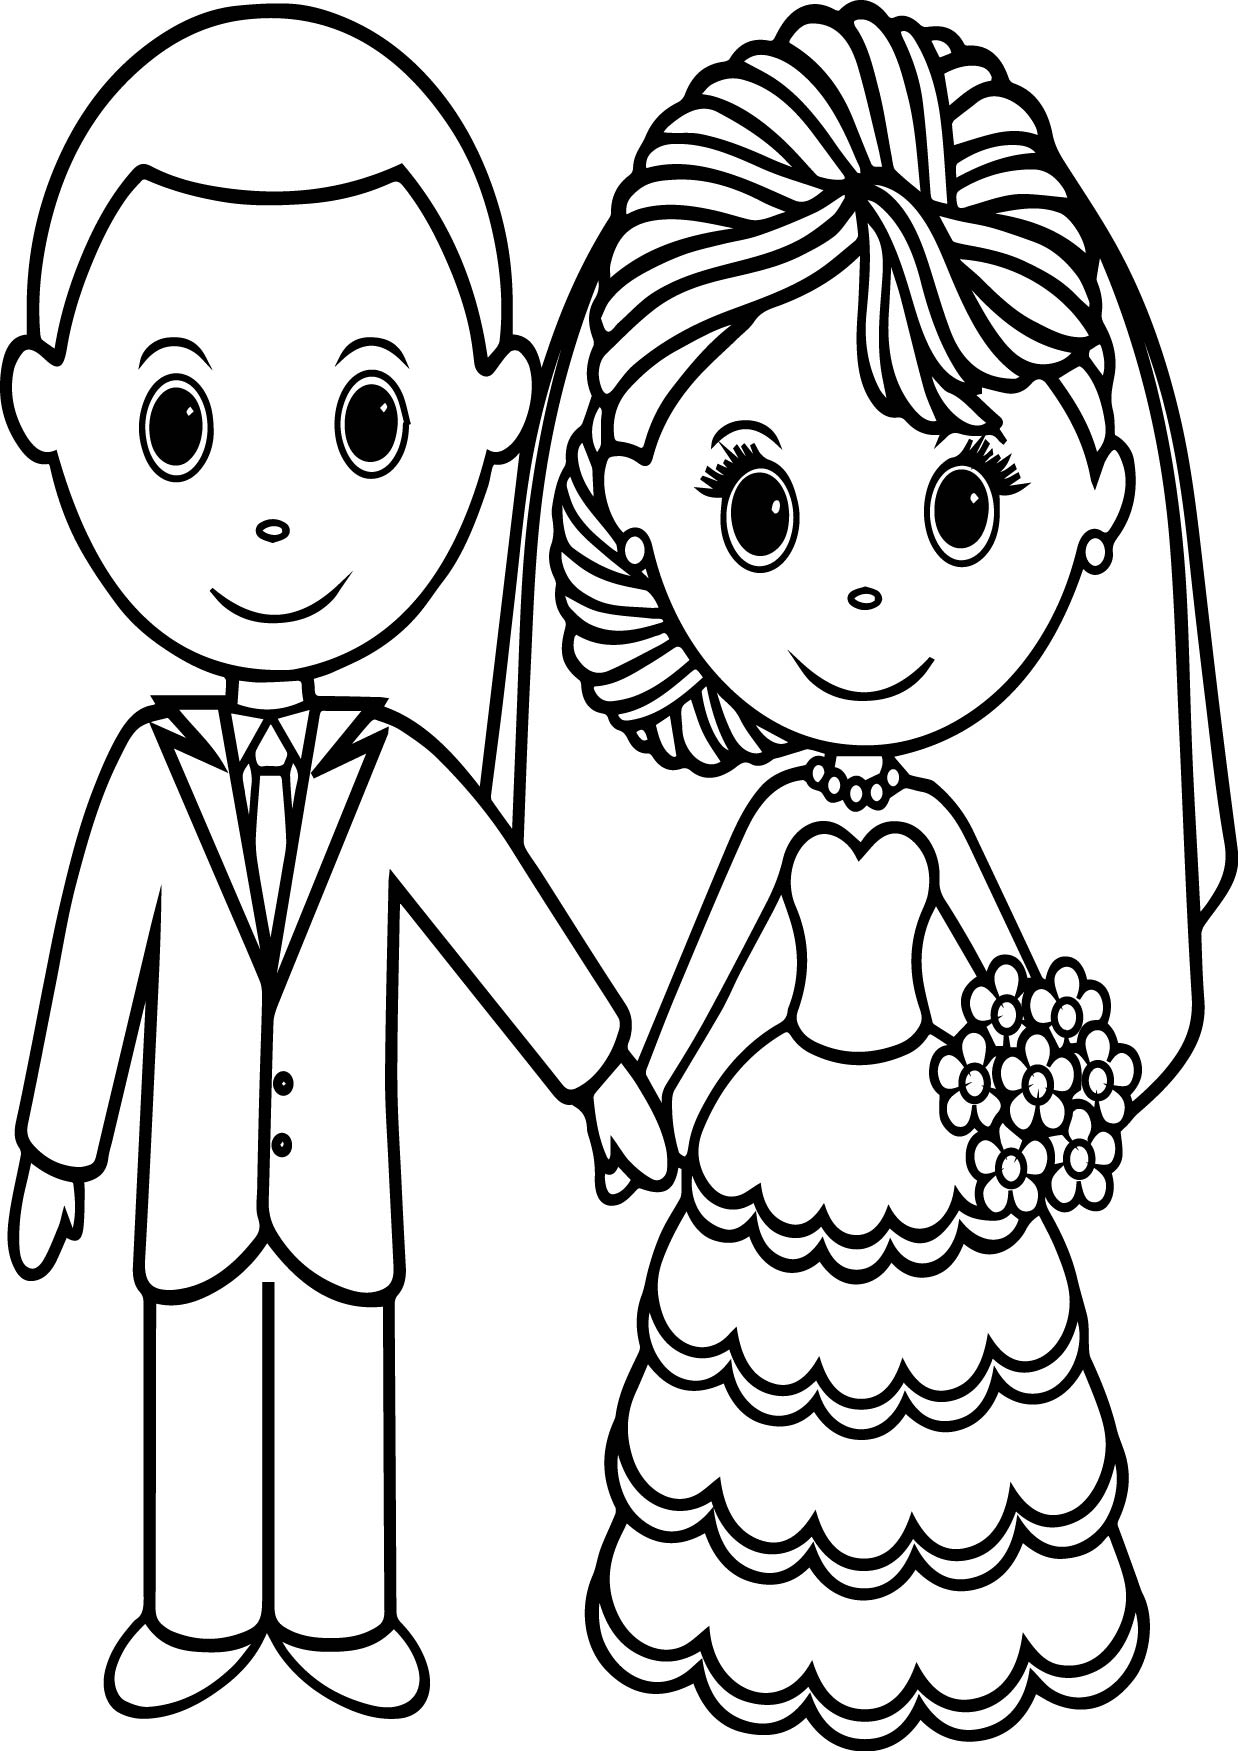 kids wedding coloring pages wedding coloring pages best coloring pages for kids kids wedding coloring pages